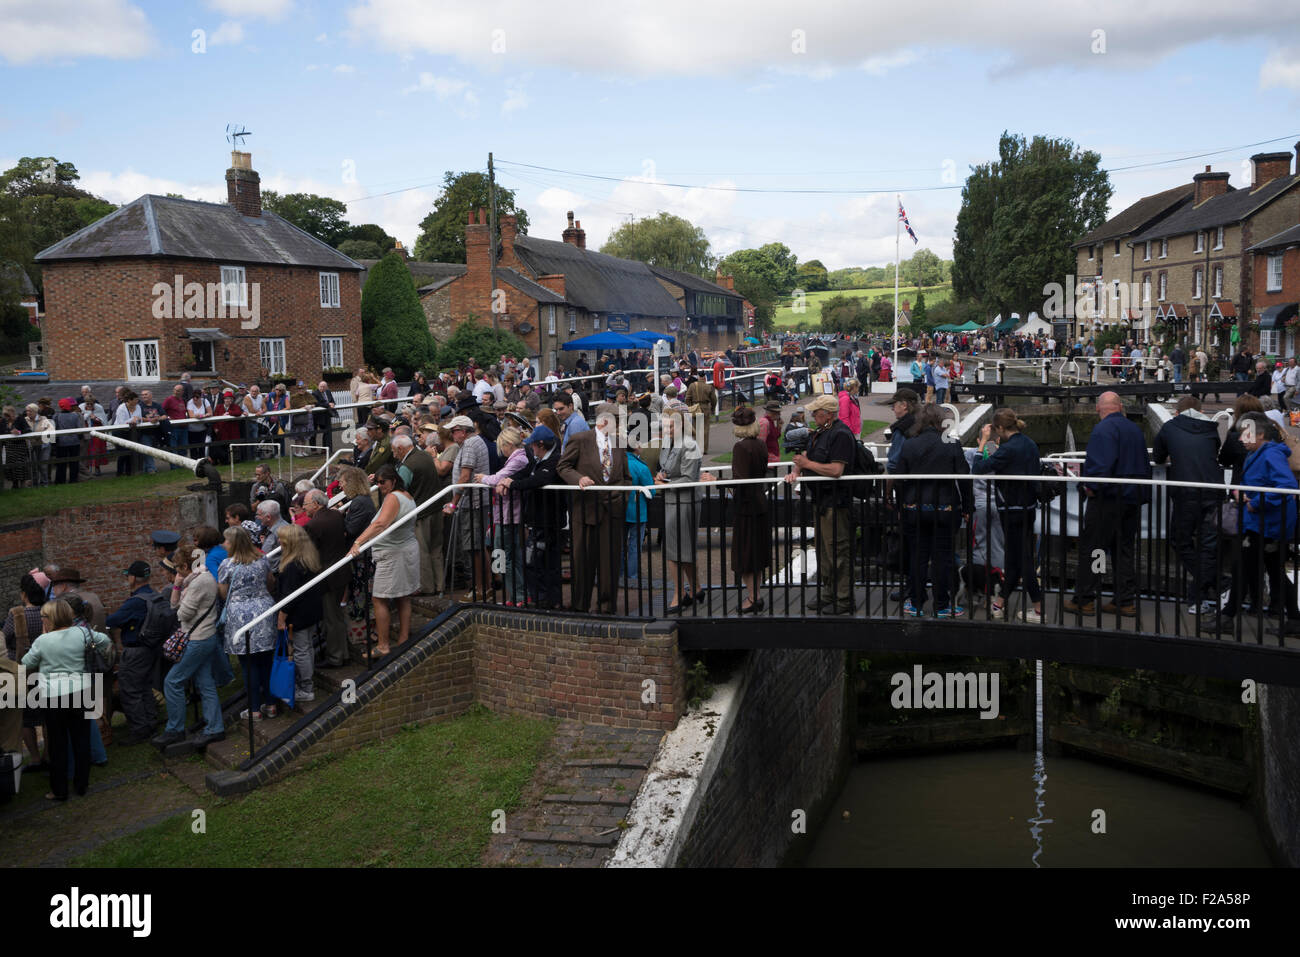 Village at War' event at Stoke Bruerne, Northamptonshire UK - Stock Image